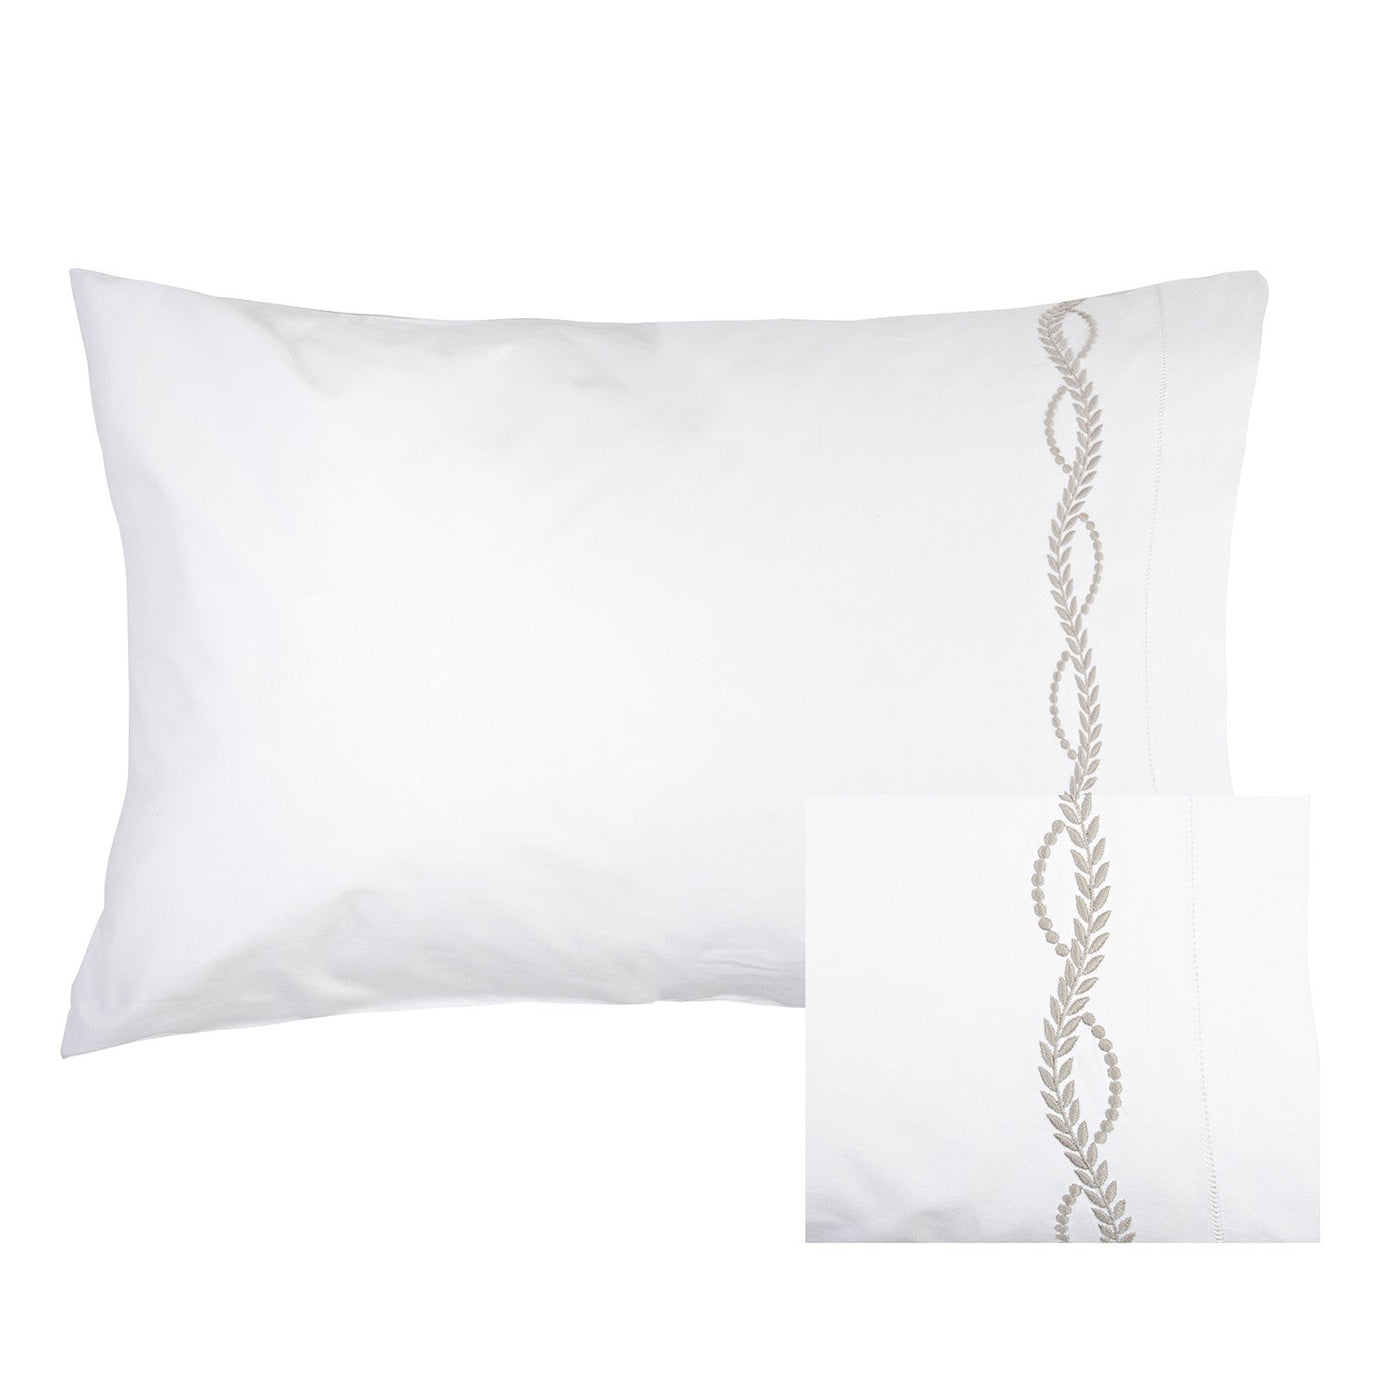 Empire Grey Embroidered Pillowcase Pair